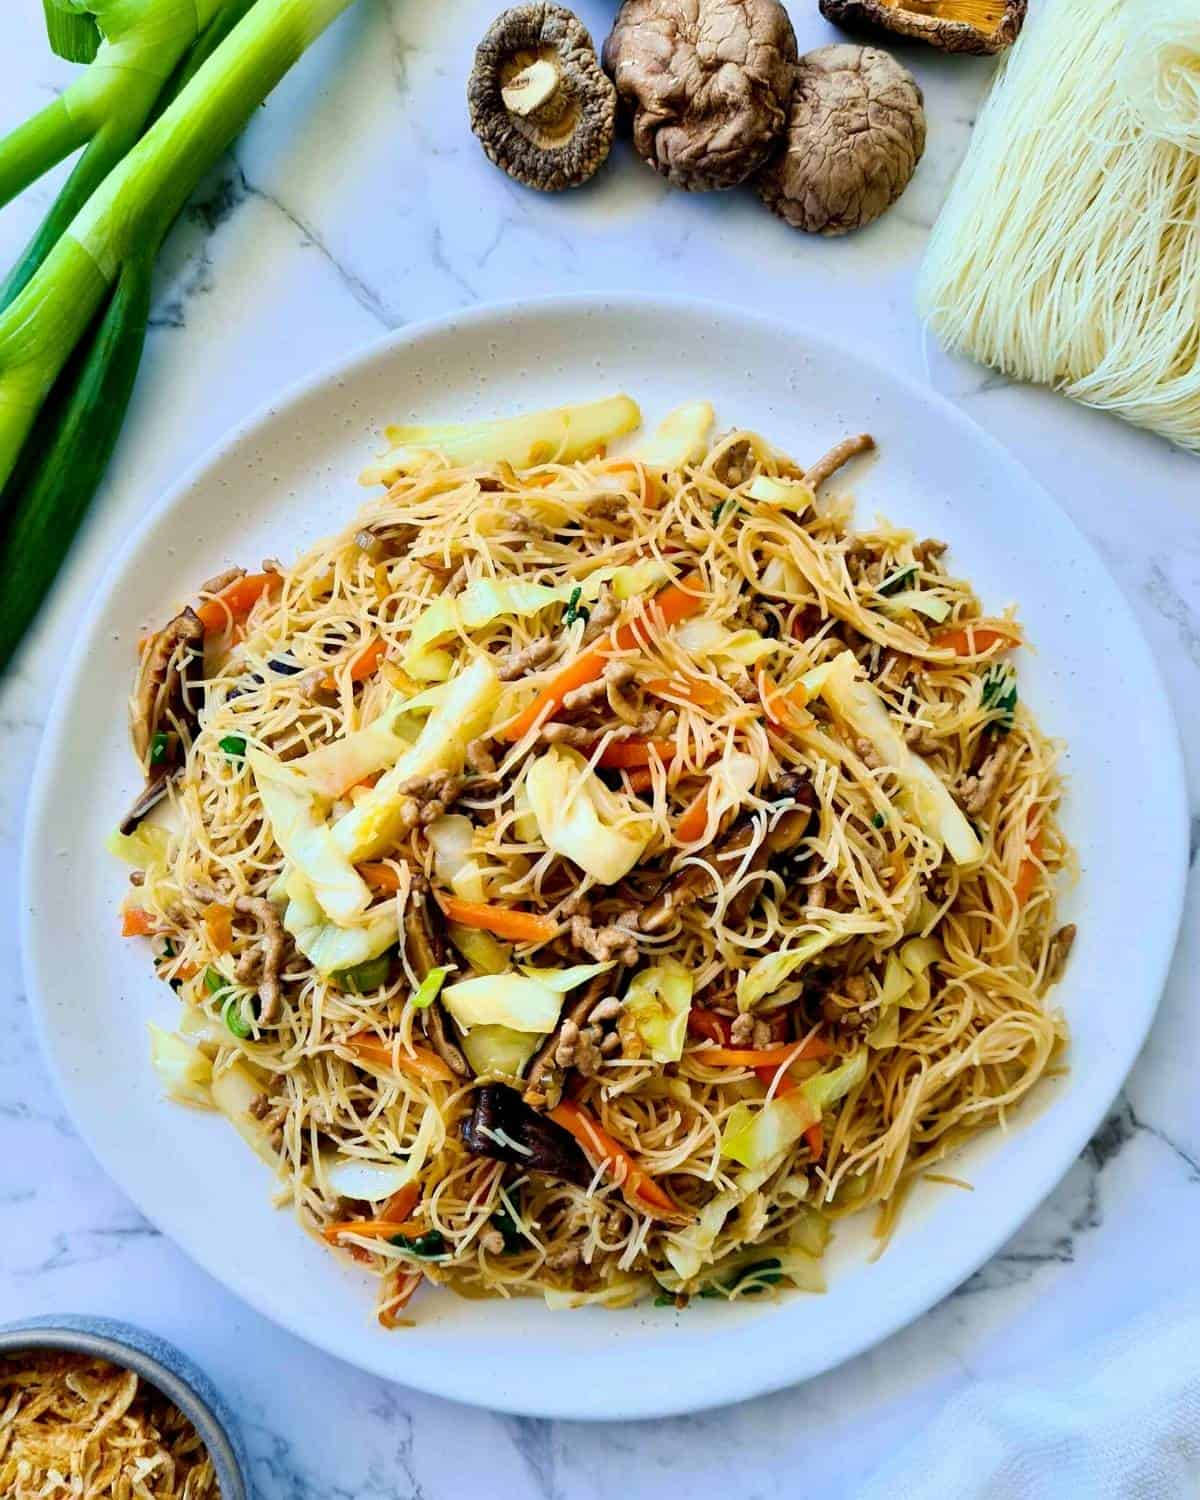 cooked noodles stir fry in a large white plate